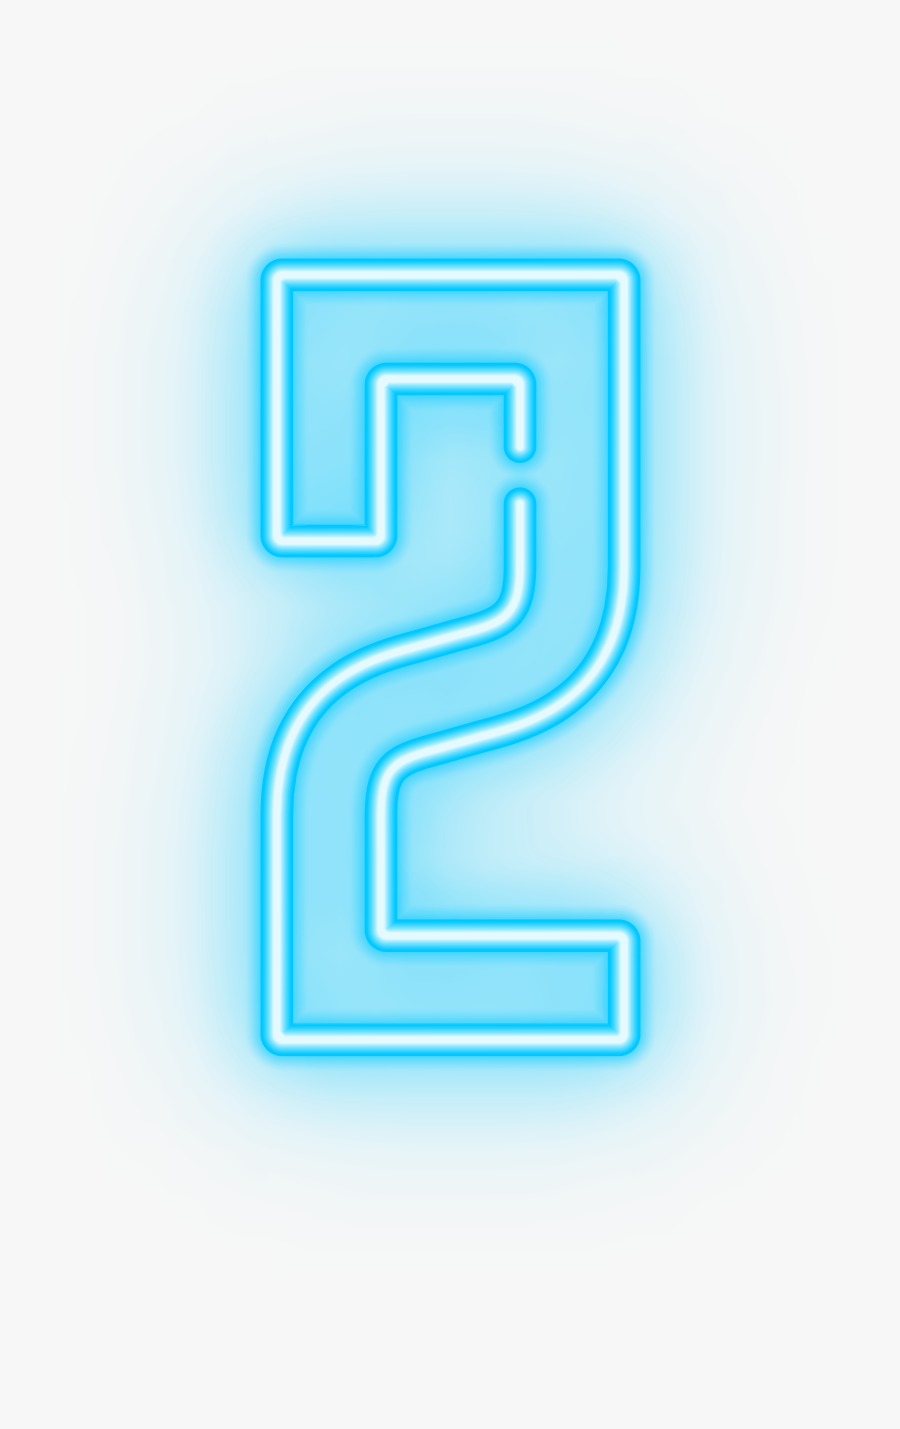 Neon Number Transparent Clip - Blue Neon Numbers Png, Transparent Clipart